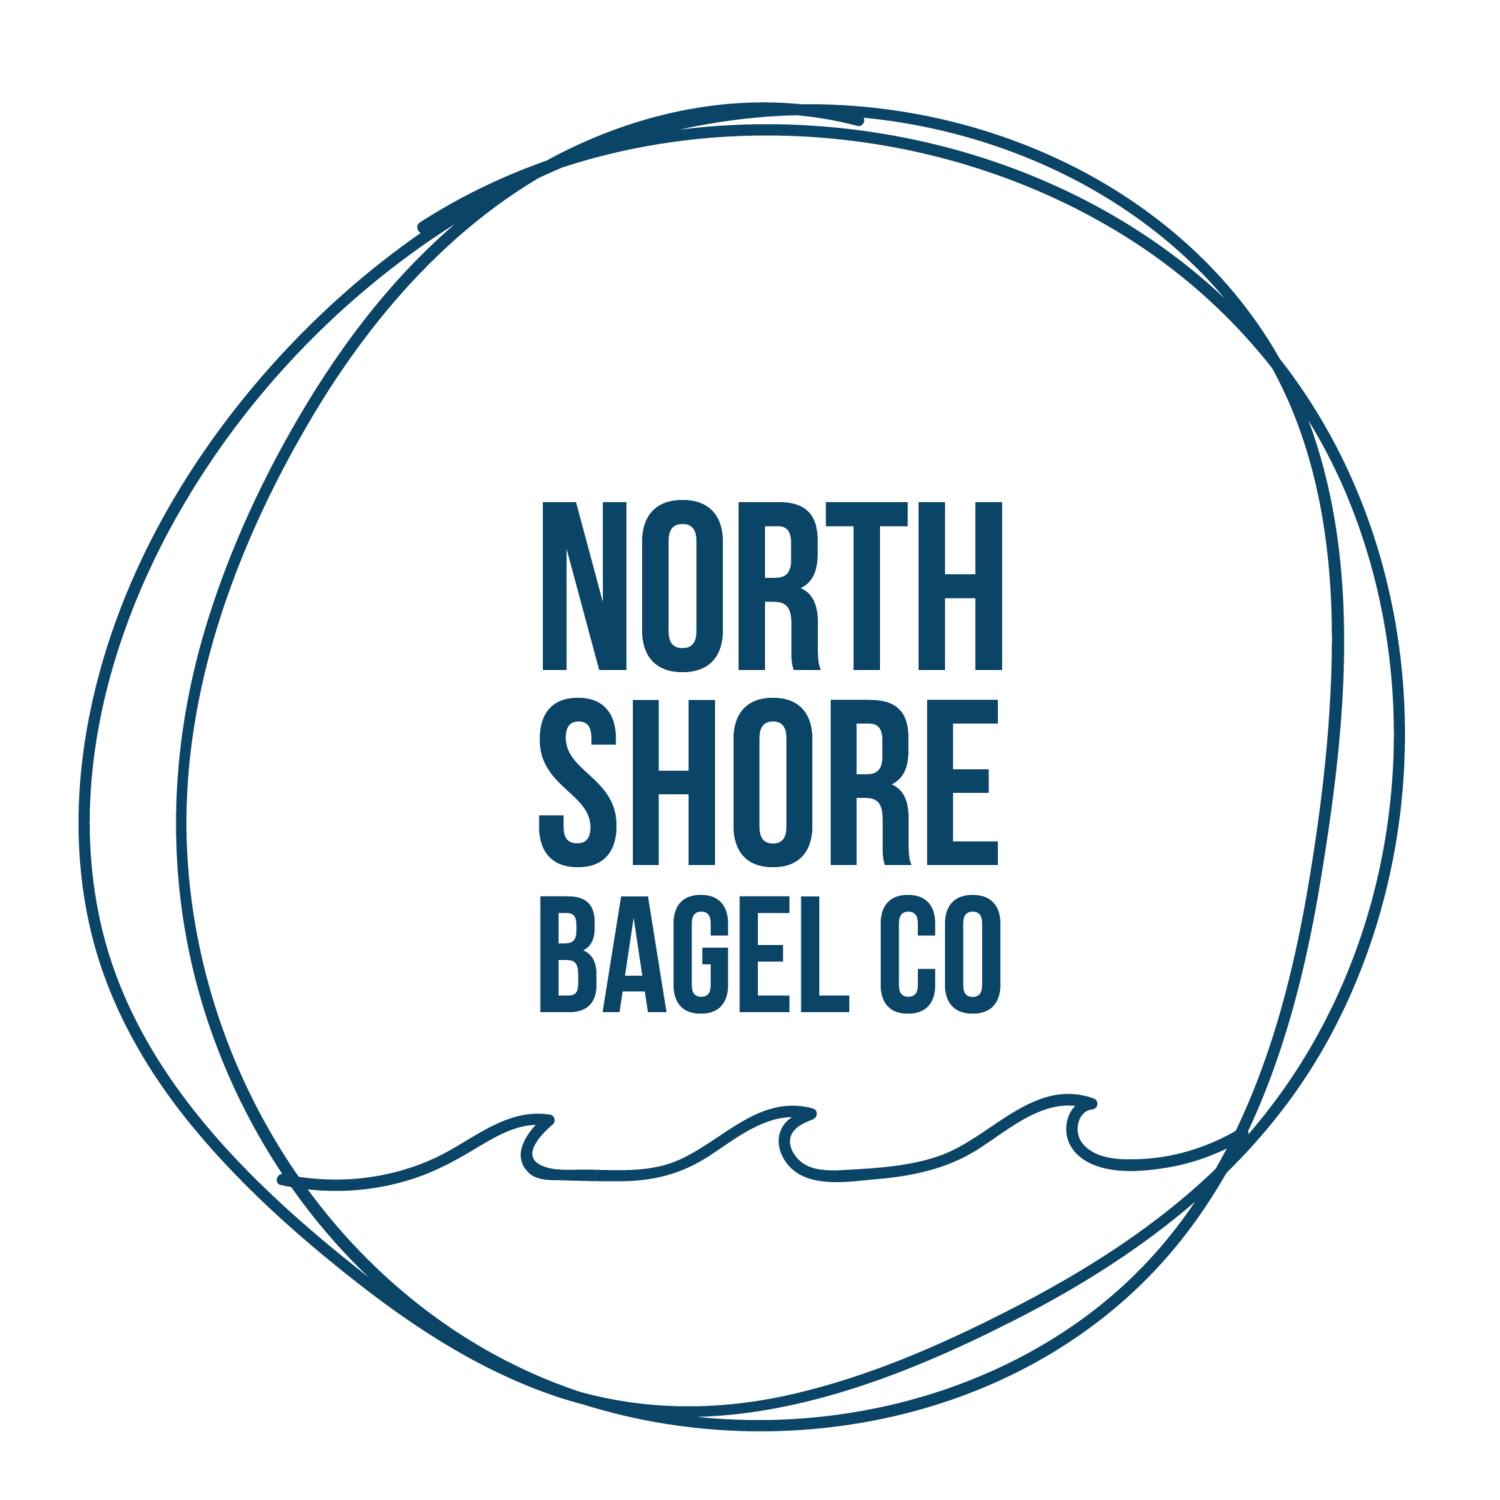 North Shore Bagel Co.